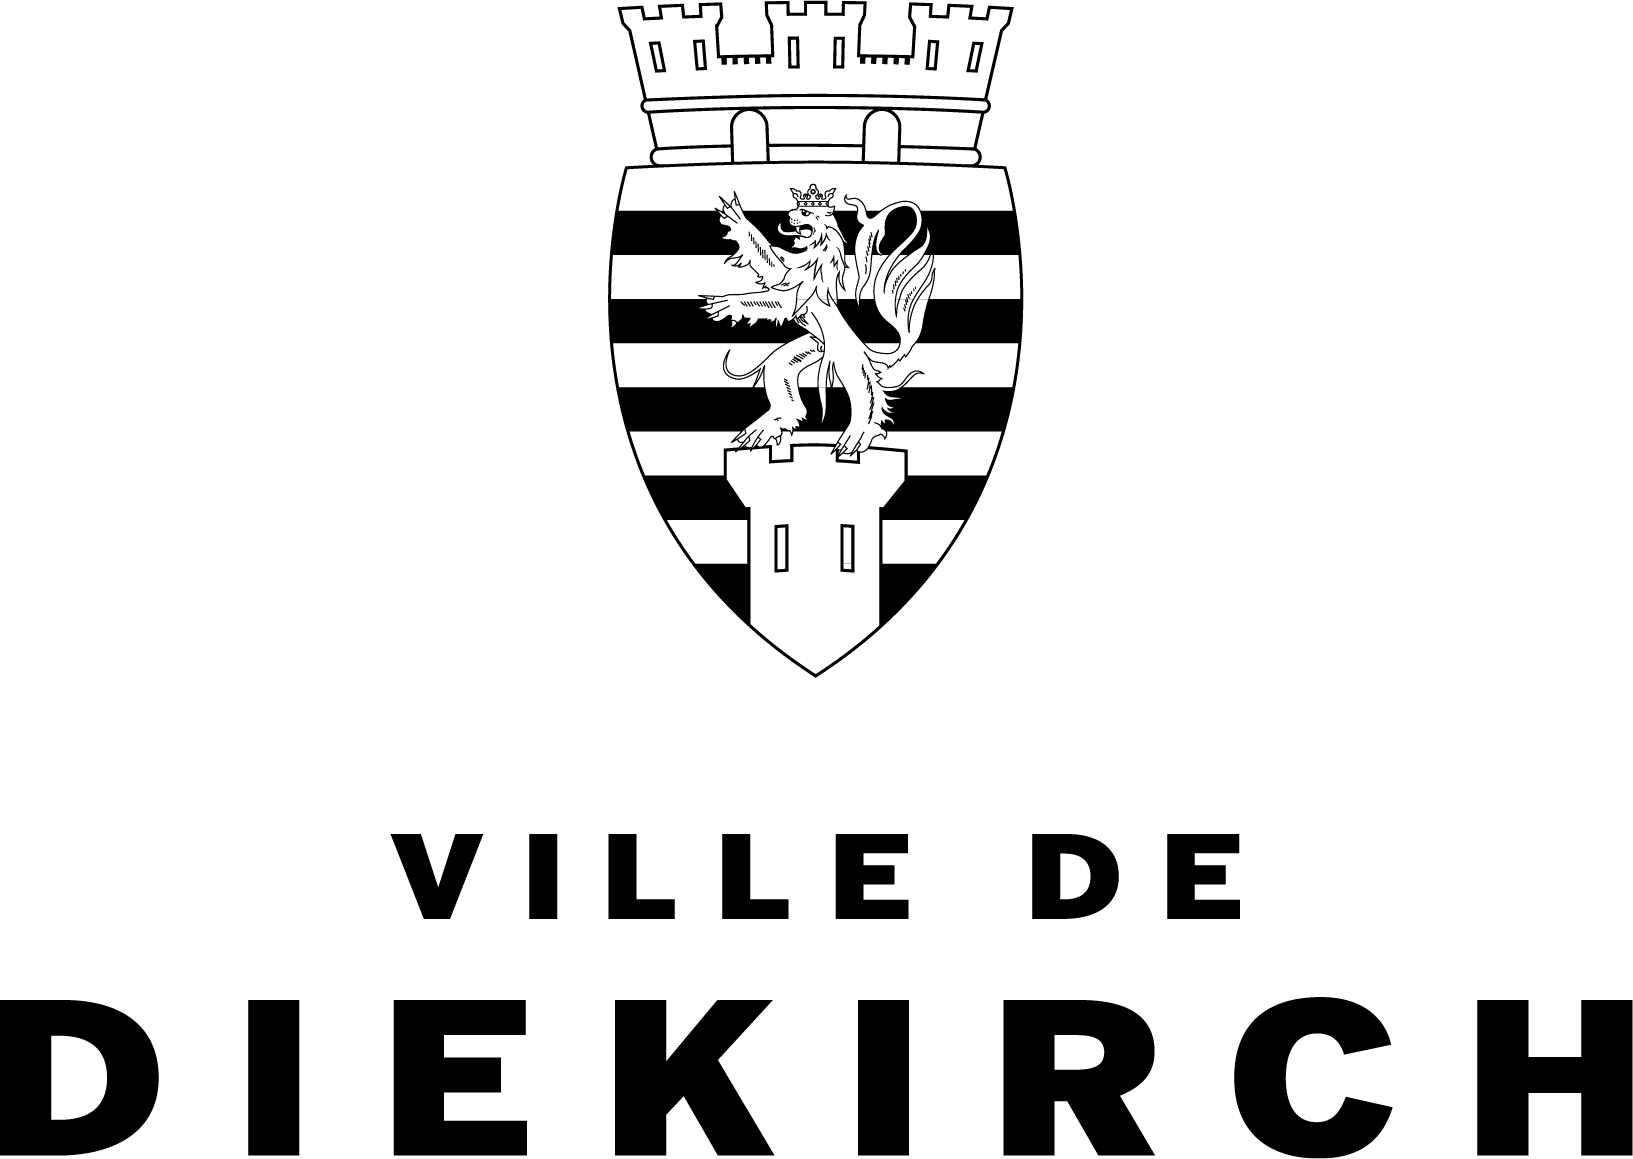 Administration Communale de Diekirch